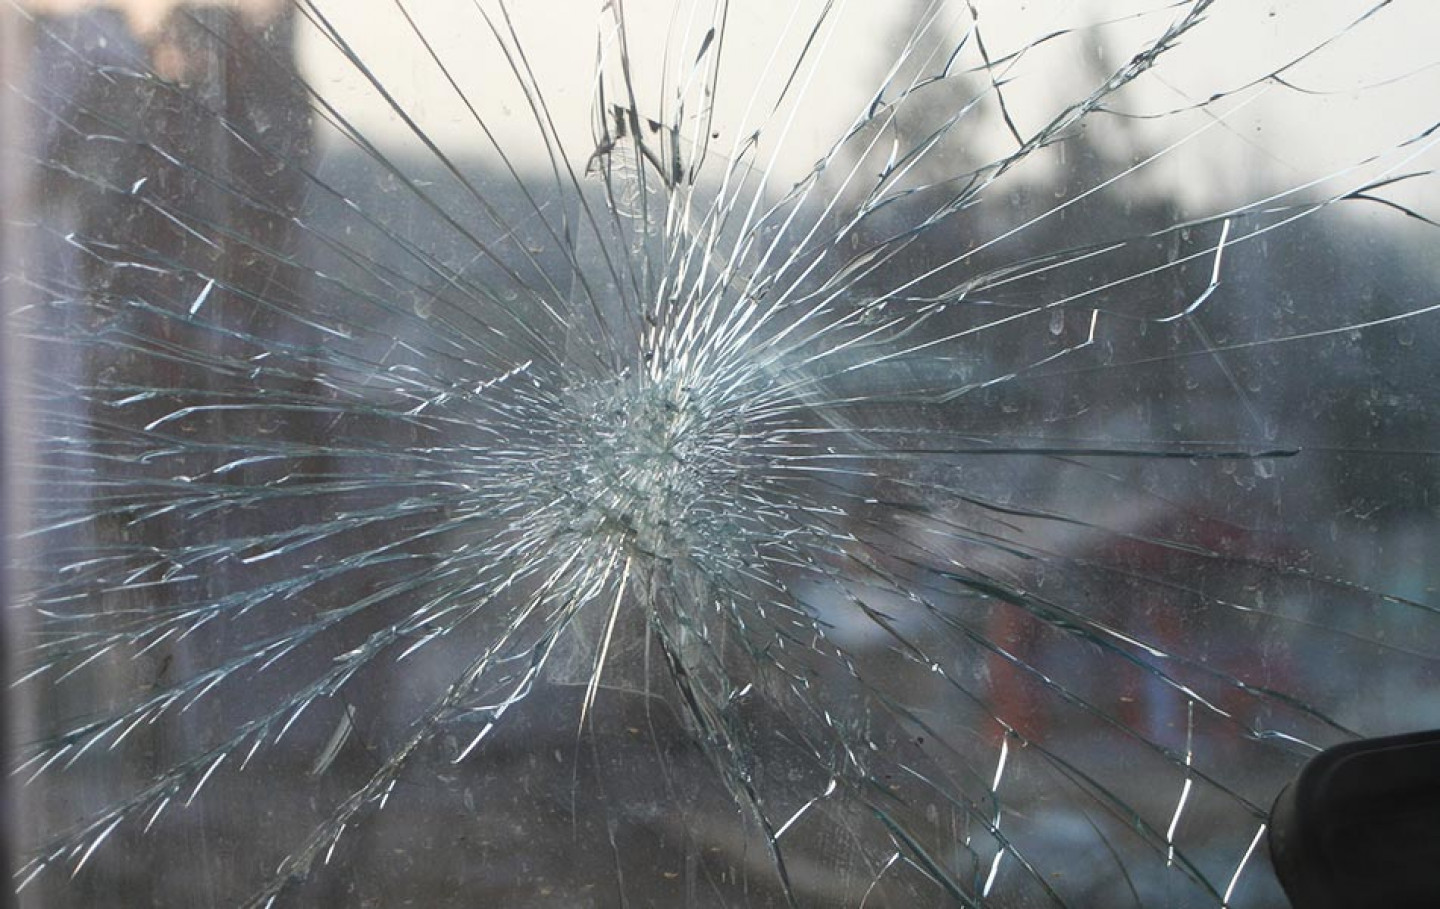 cracked-windshield-after-car-accident